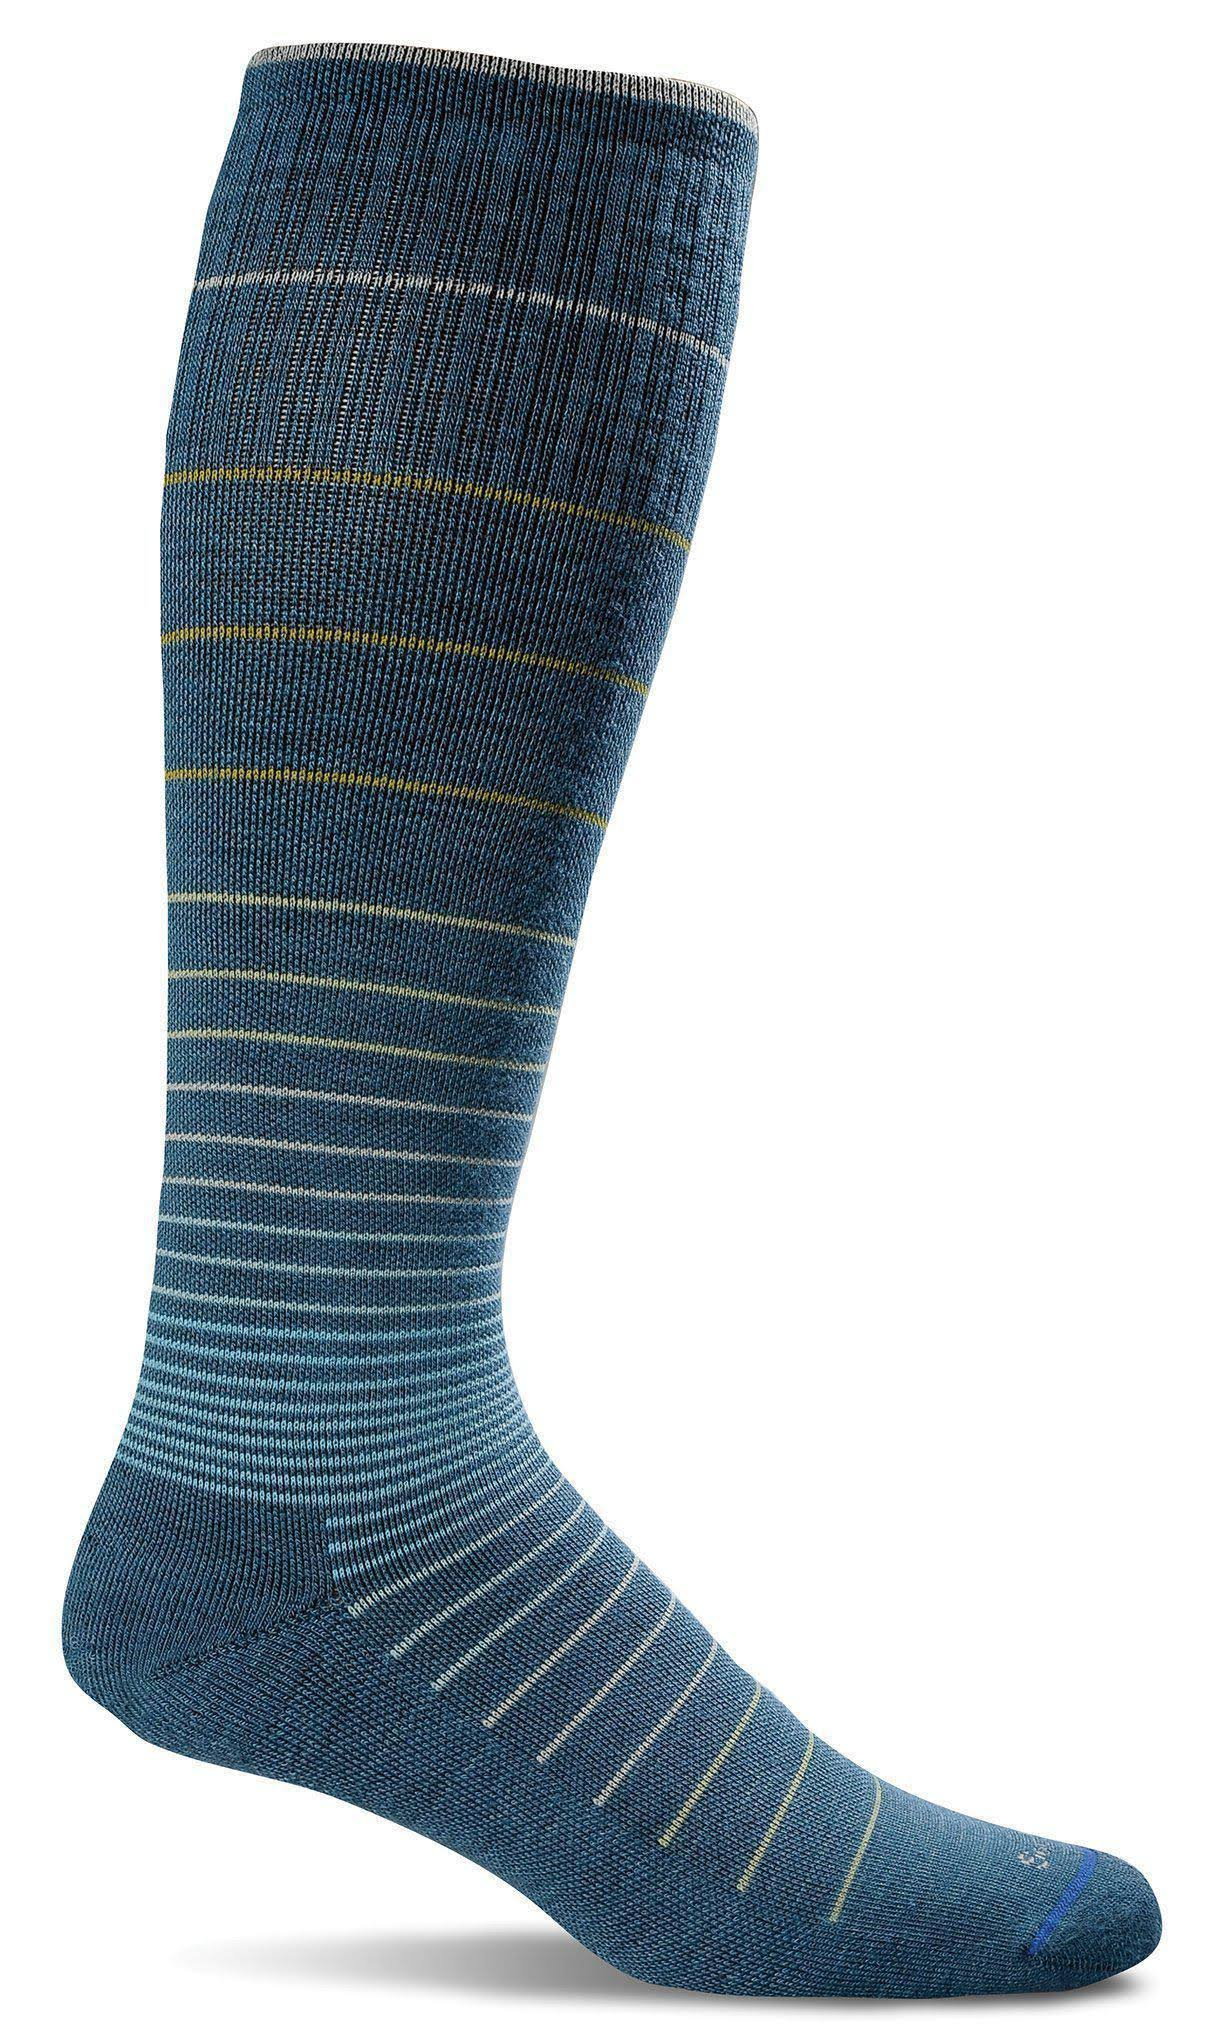 Sockwell Women's Circulator Compression Sock - Teal, Medium, Large